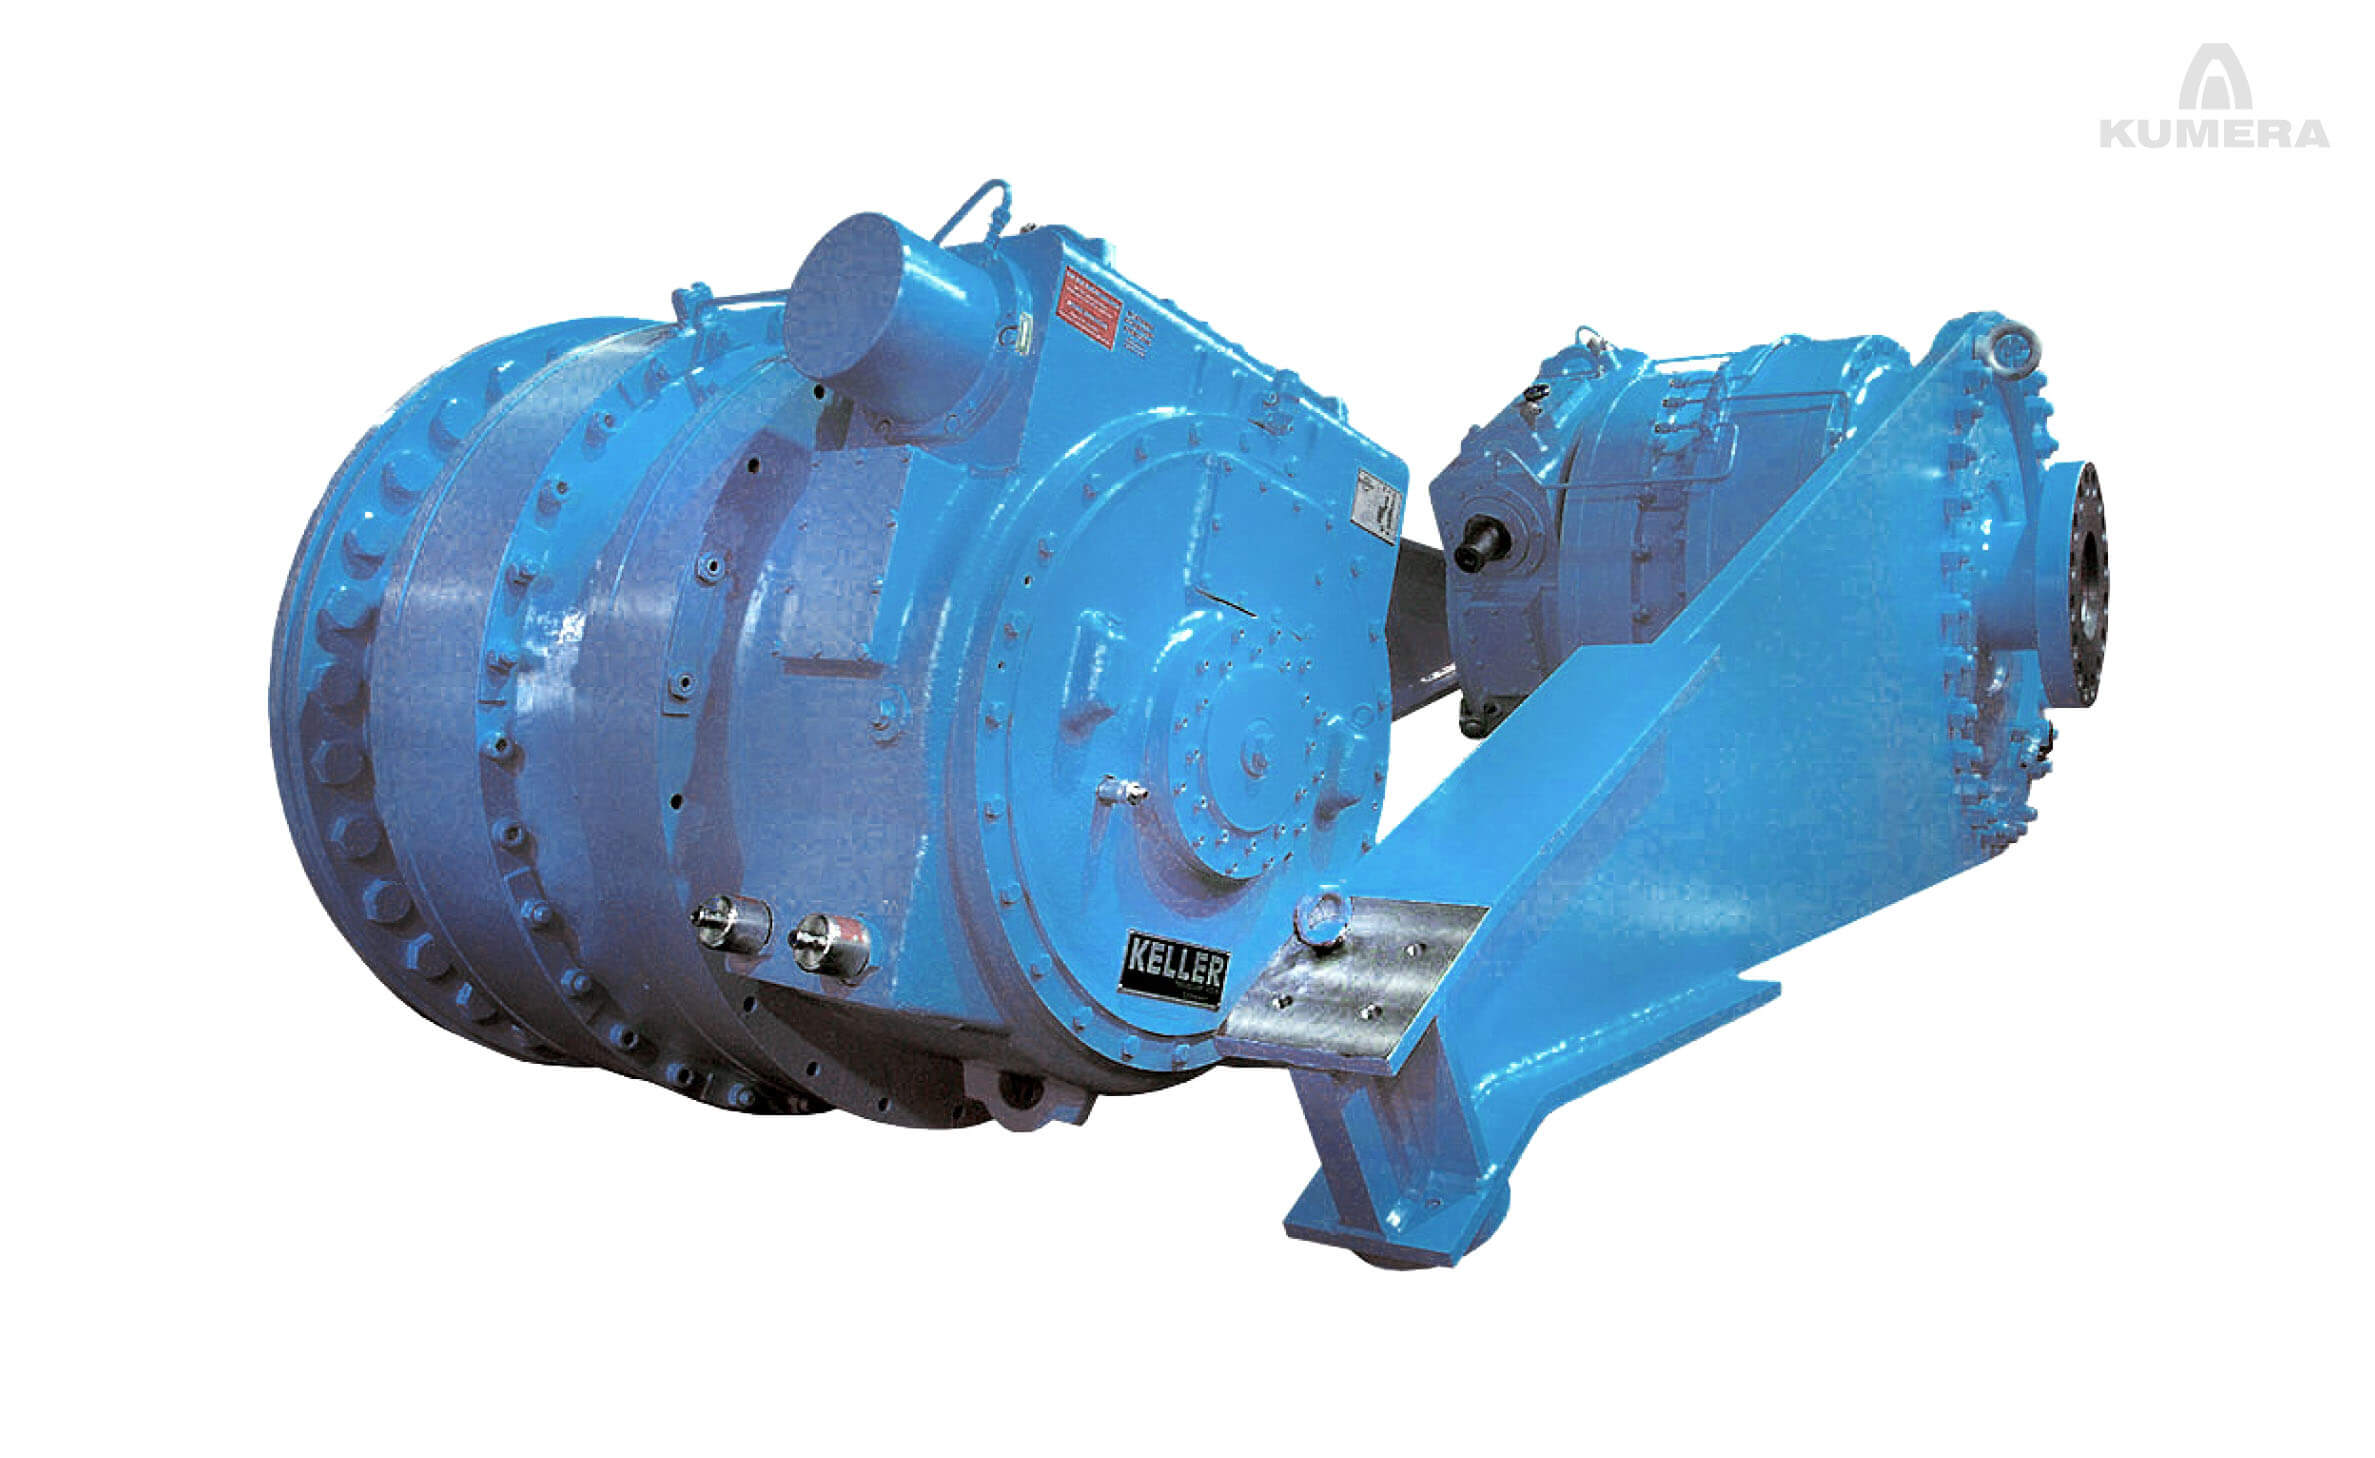 Kumera Custom Built Heavy-Duty Gearboxes for Opencast Mining. Kumera Conveyor Gearboxes and Landing Gearboxes.